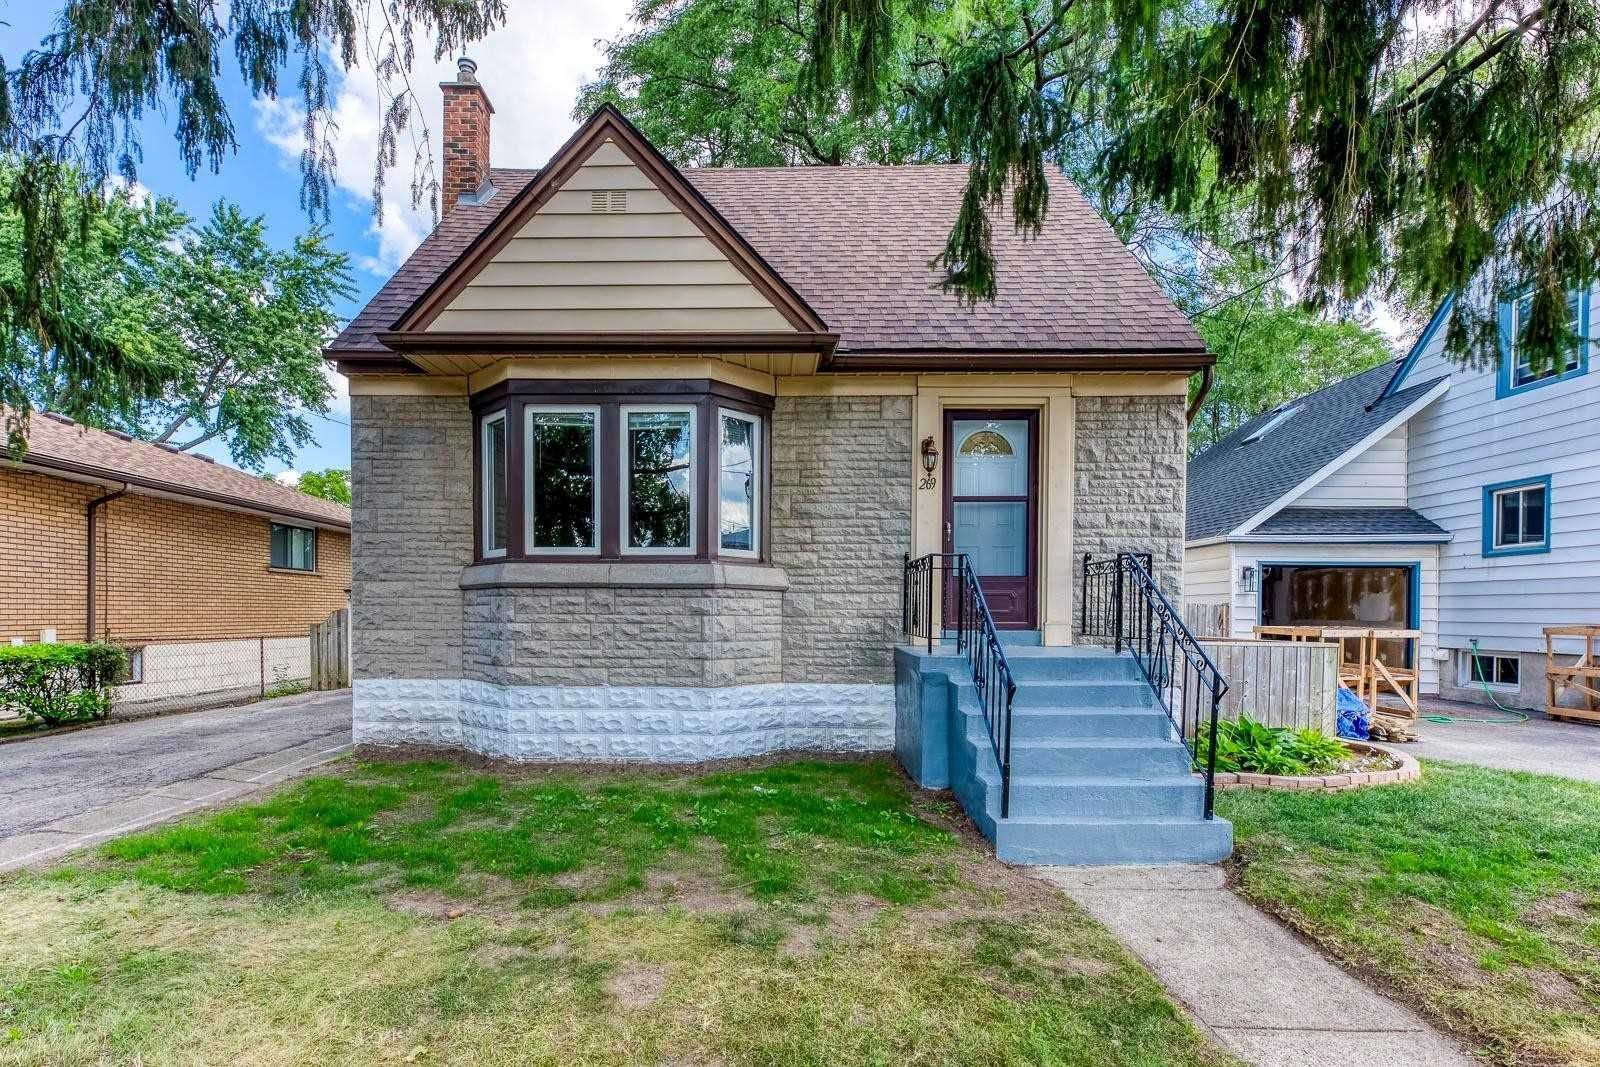 Main Photo: 269 E Queensdale Avenue in Hamilton: Eastmount House (1 1/2 Storey) for sale : MLS®# X5360840